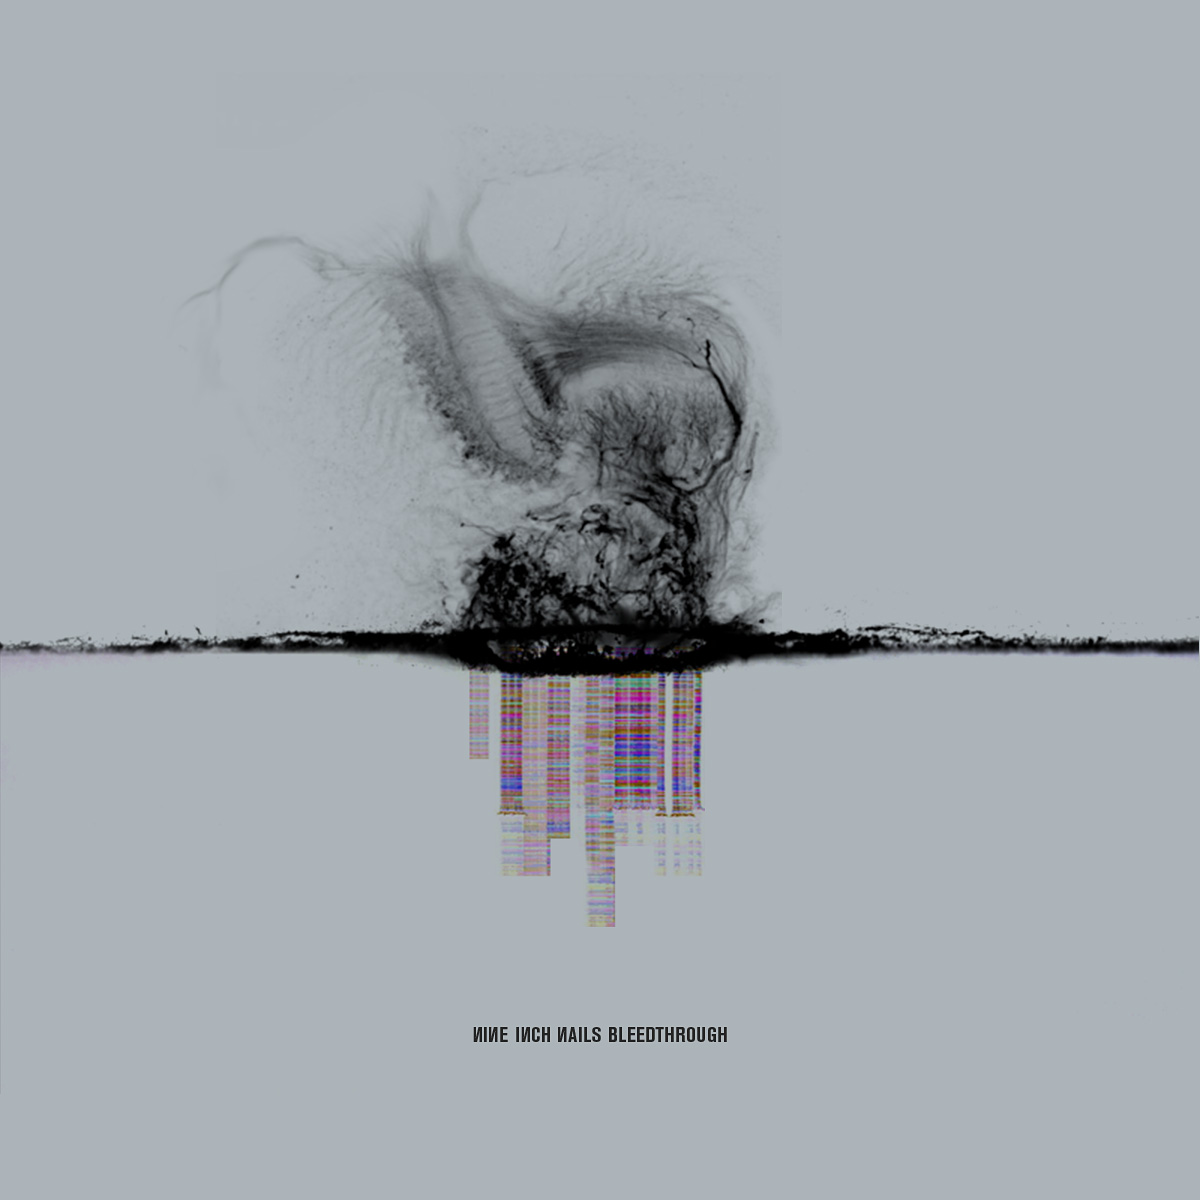 Nine Inch Nails – Bleedthrough / With Teeth artworks - ILLNESS ILLUSION